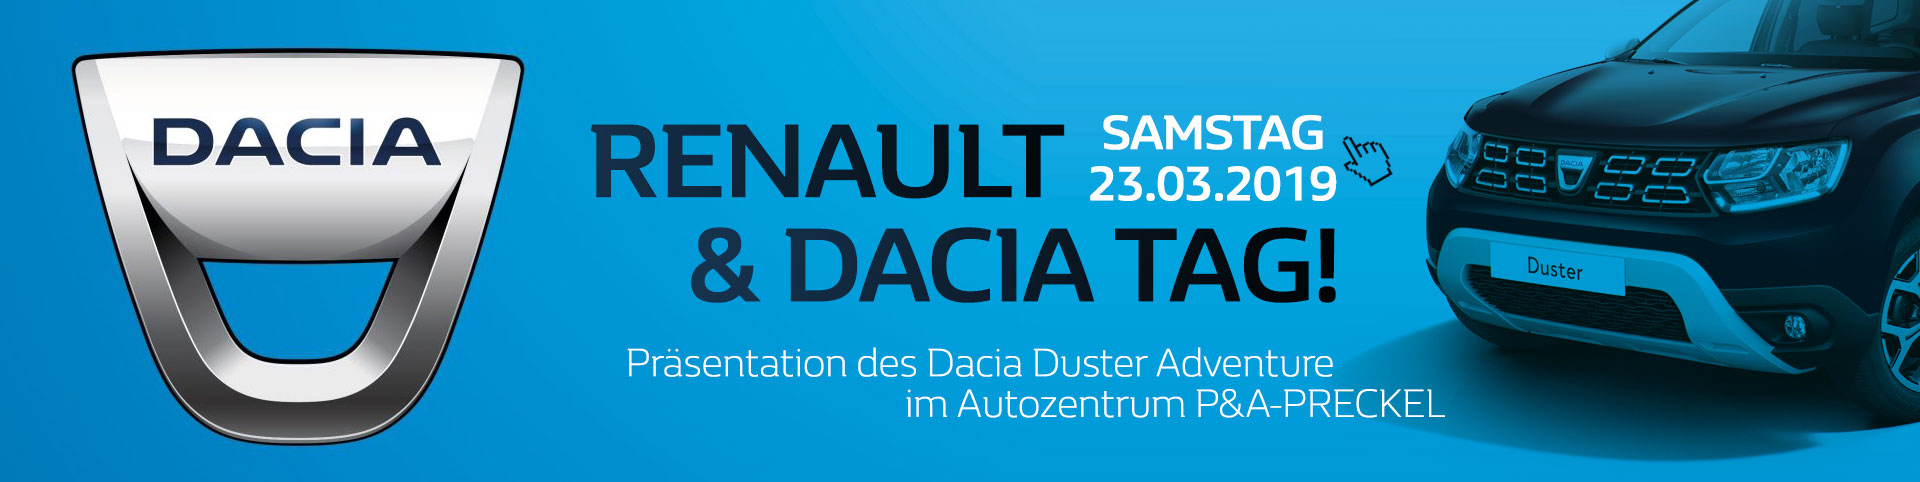 Dacia Duster Adventure Präsentation im Autozentrum P&A-PRECKEL